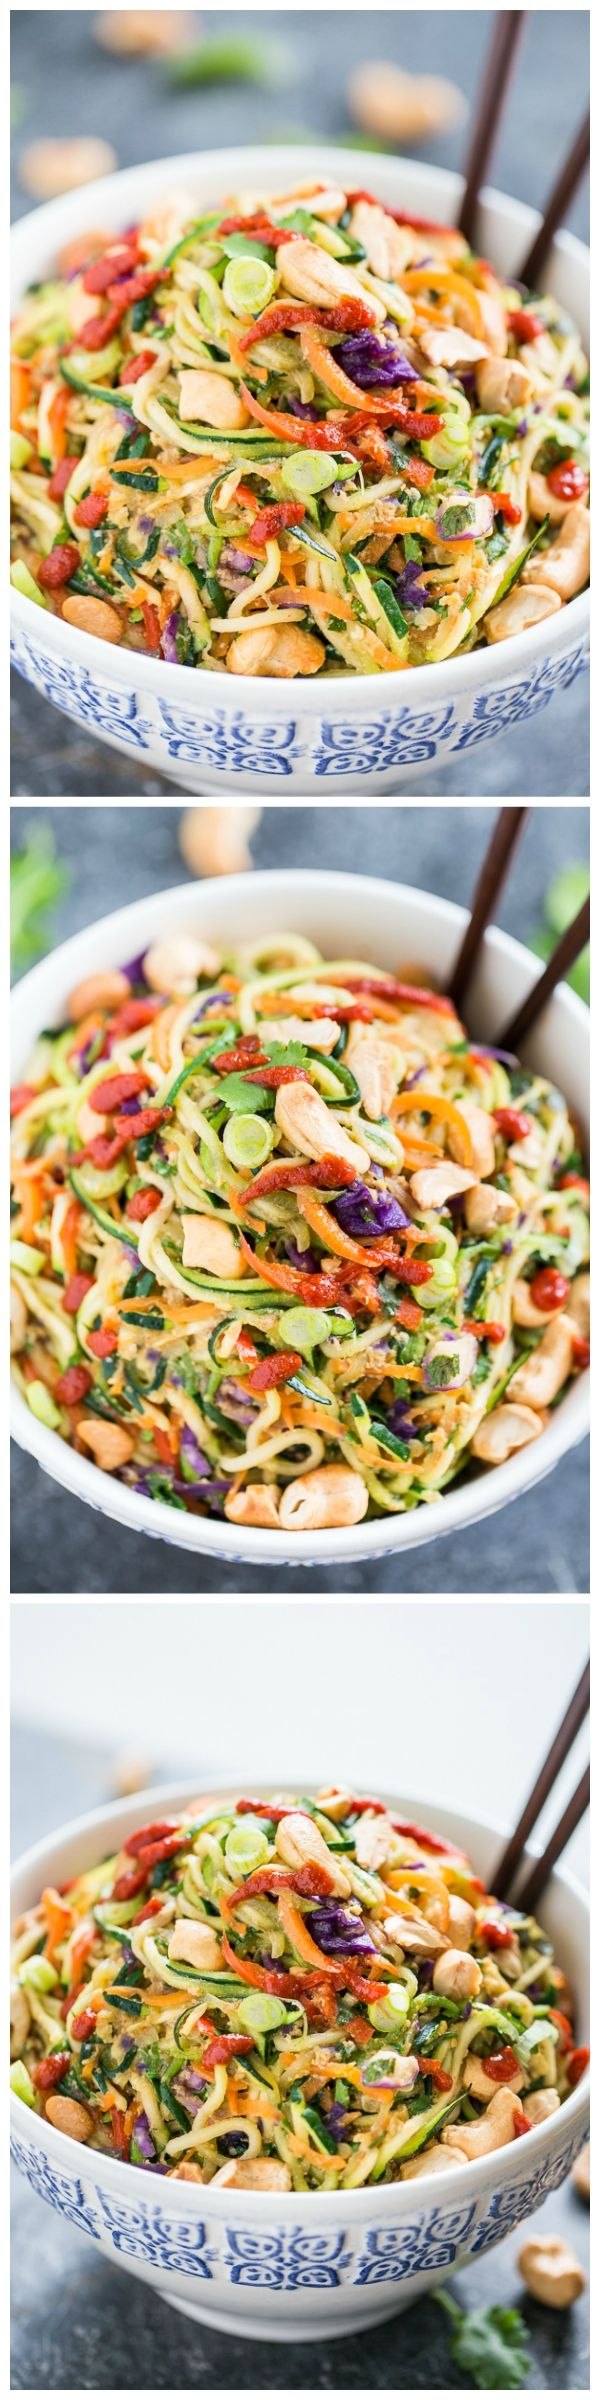 Rainbow Veggie Dragon Noodles - spiralized comfort food in a bowl, topped with extra sriracha if desired!